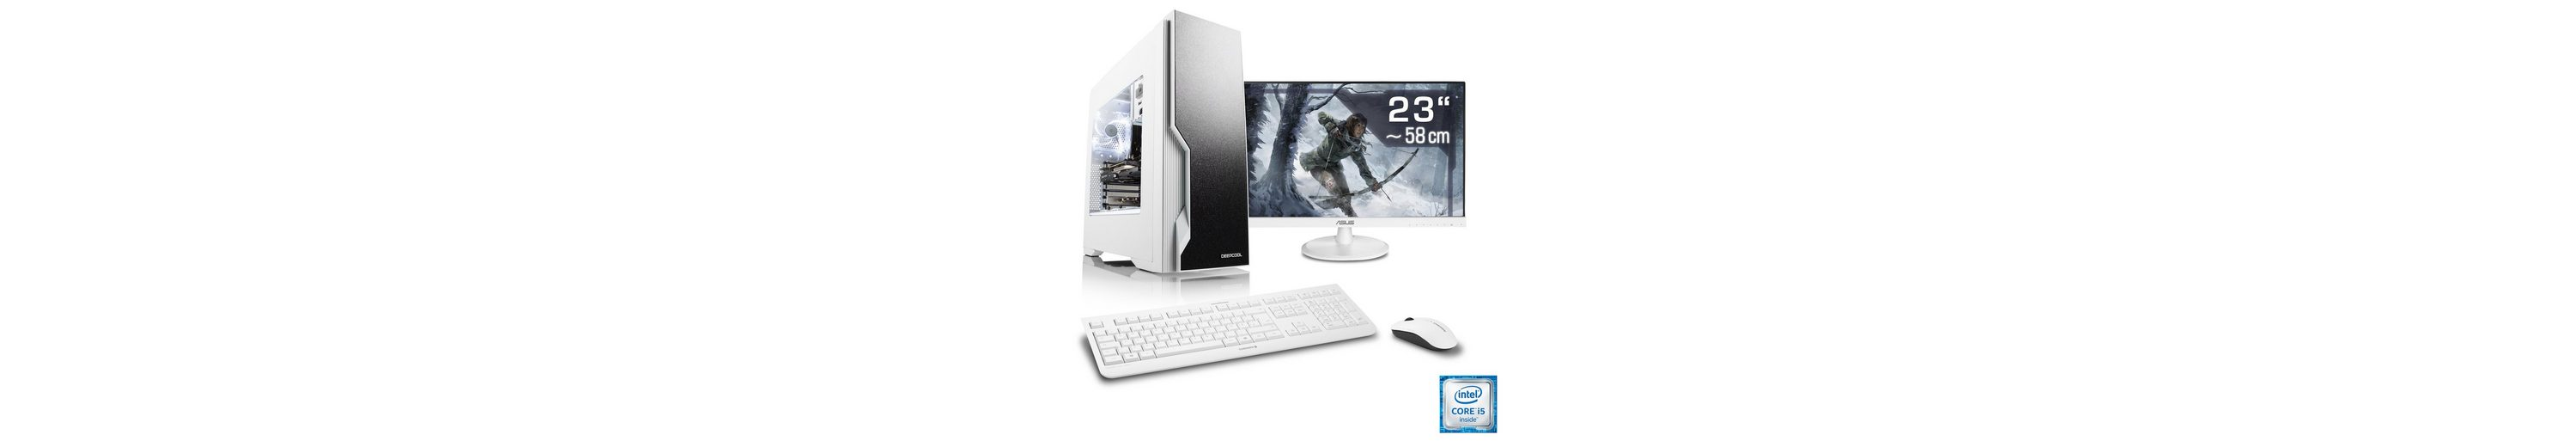 "CSL Gaming PC Set | Core i5-6600 | RX 470 | 16GB RAM | SSD | 23"" TFT »Speed T5699 Windows 10 Home«"